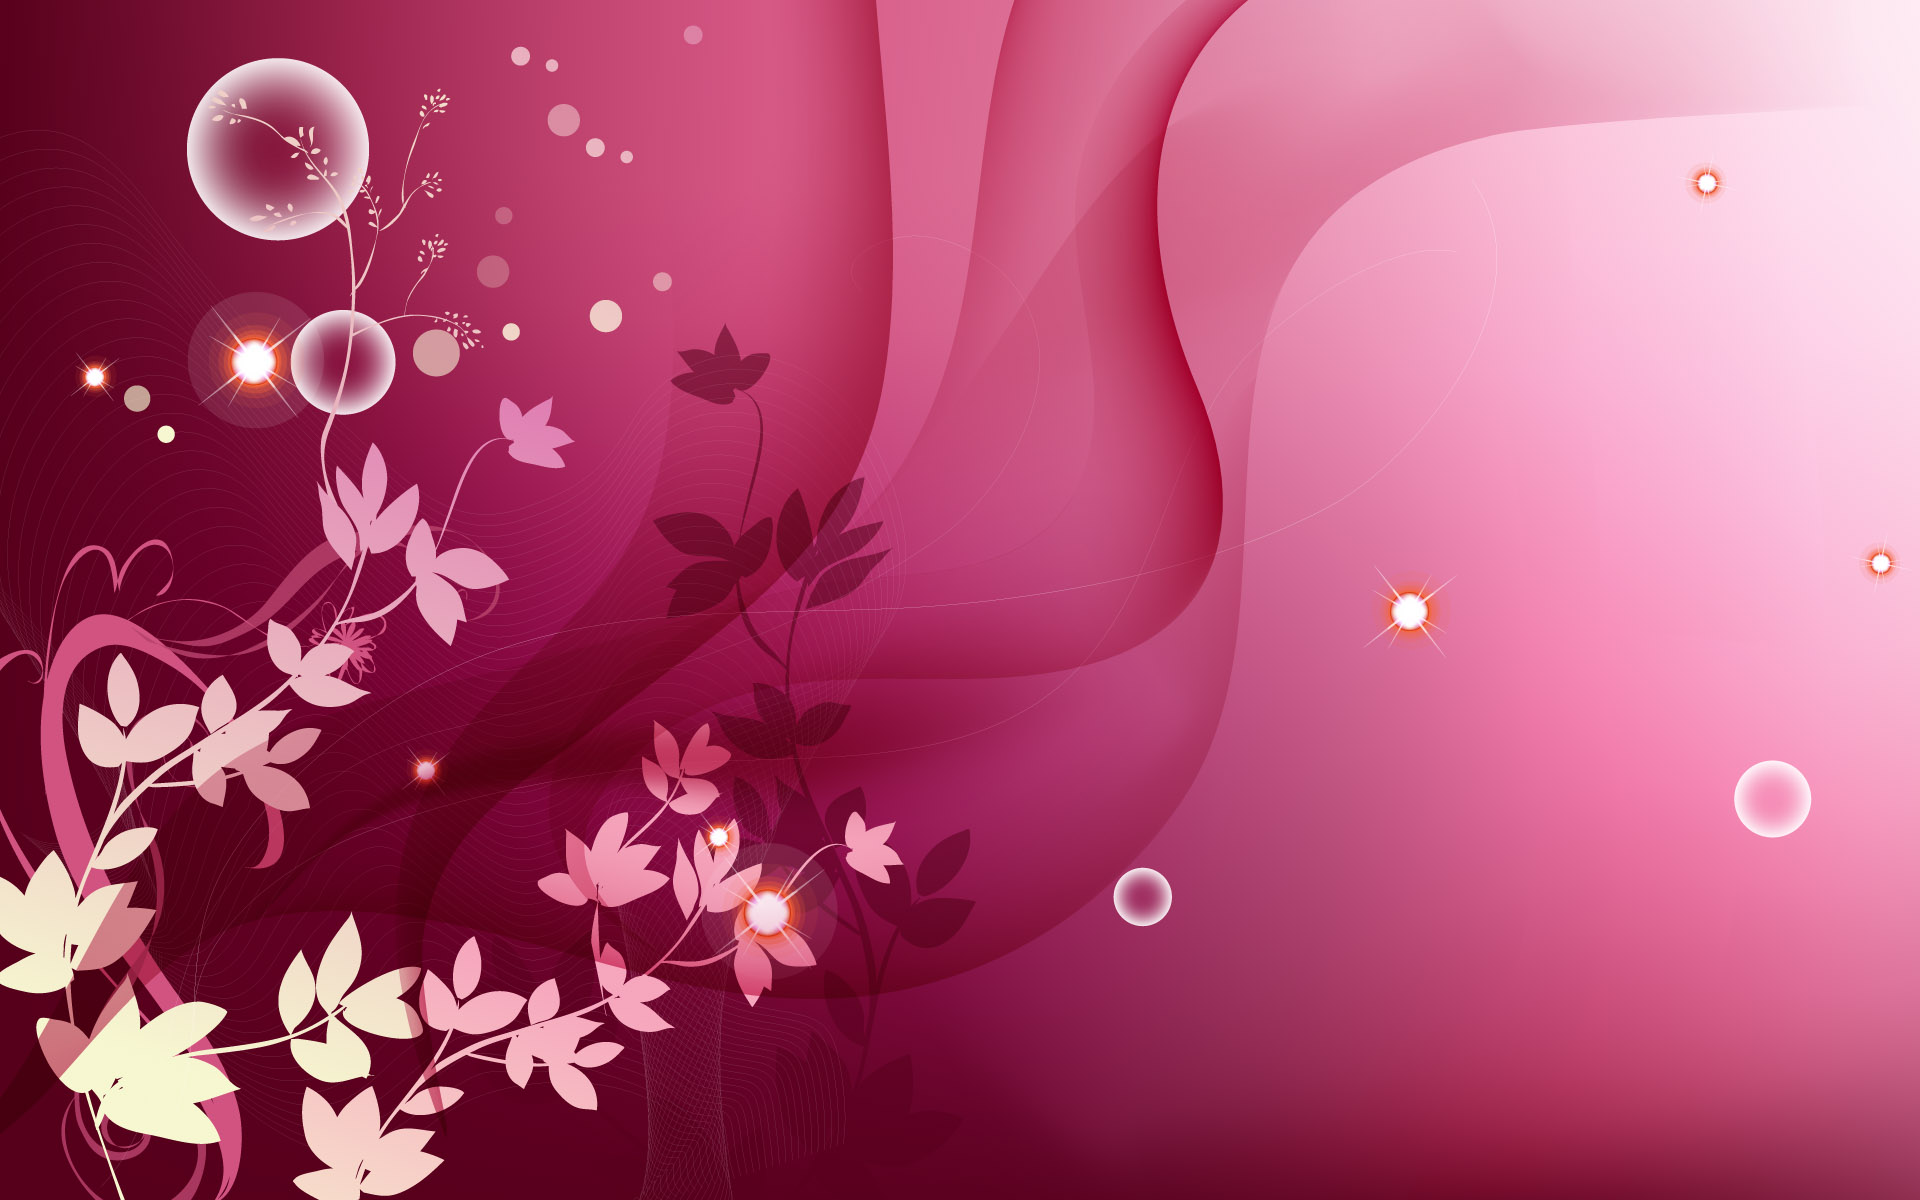 cute wallpapers wallpaper pink background cool image 1920x1200